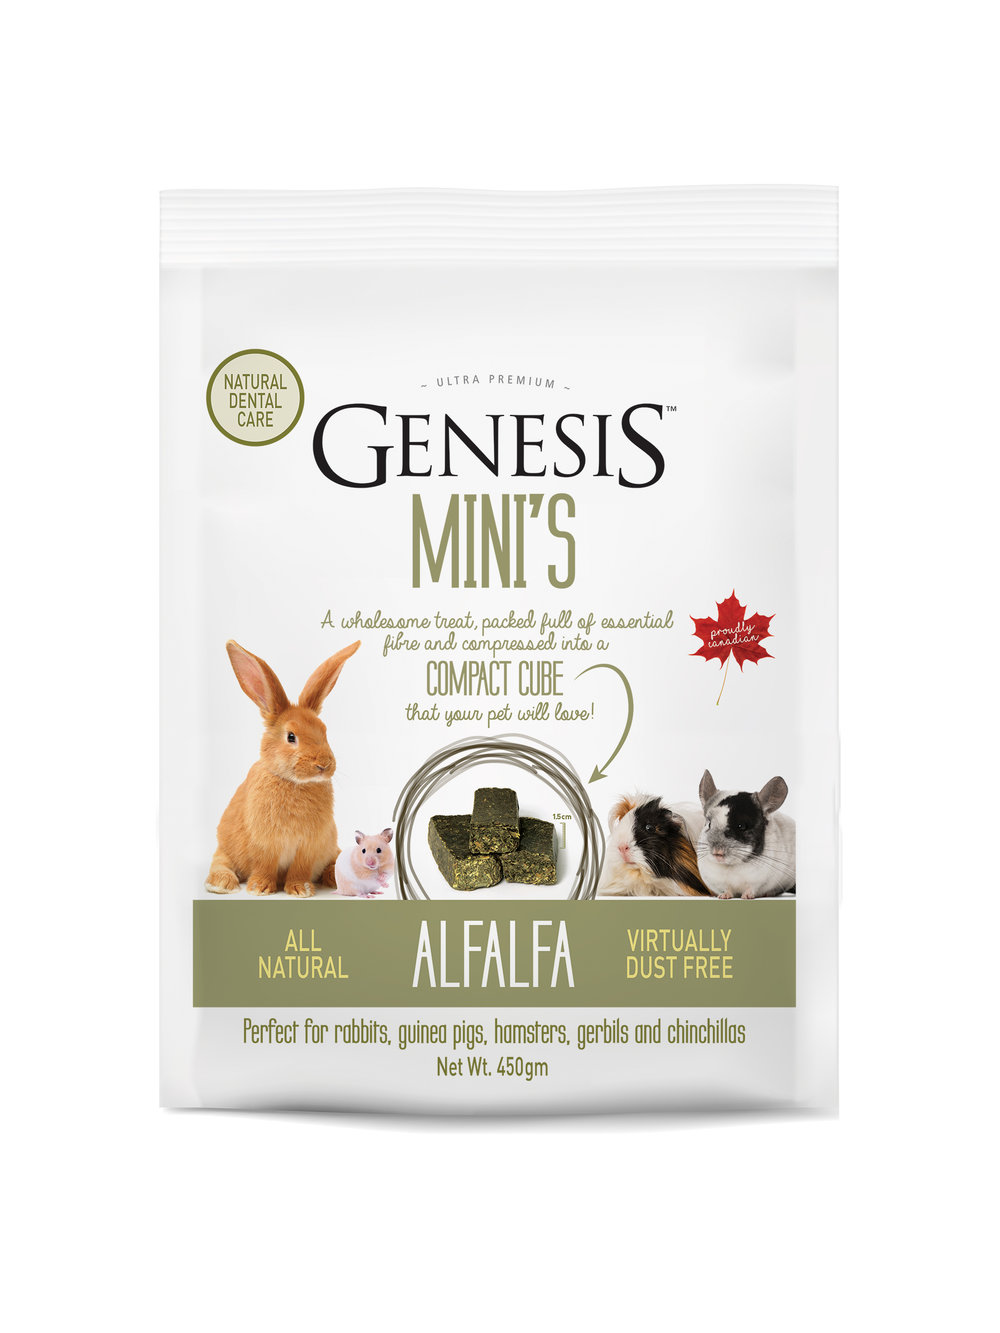 Genesis Mini's - Alfalfa - 100% ALL NATURAL SUN-CURED ALFALFA HAYThe perfect wholesome treat, packed full of essential fibre and compressed into a compact cube that your pet will love!